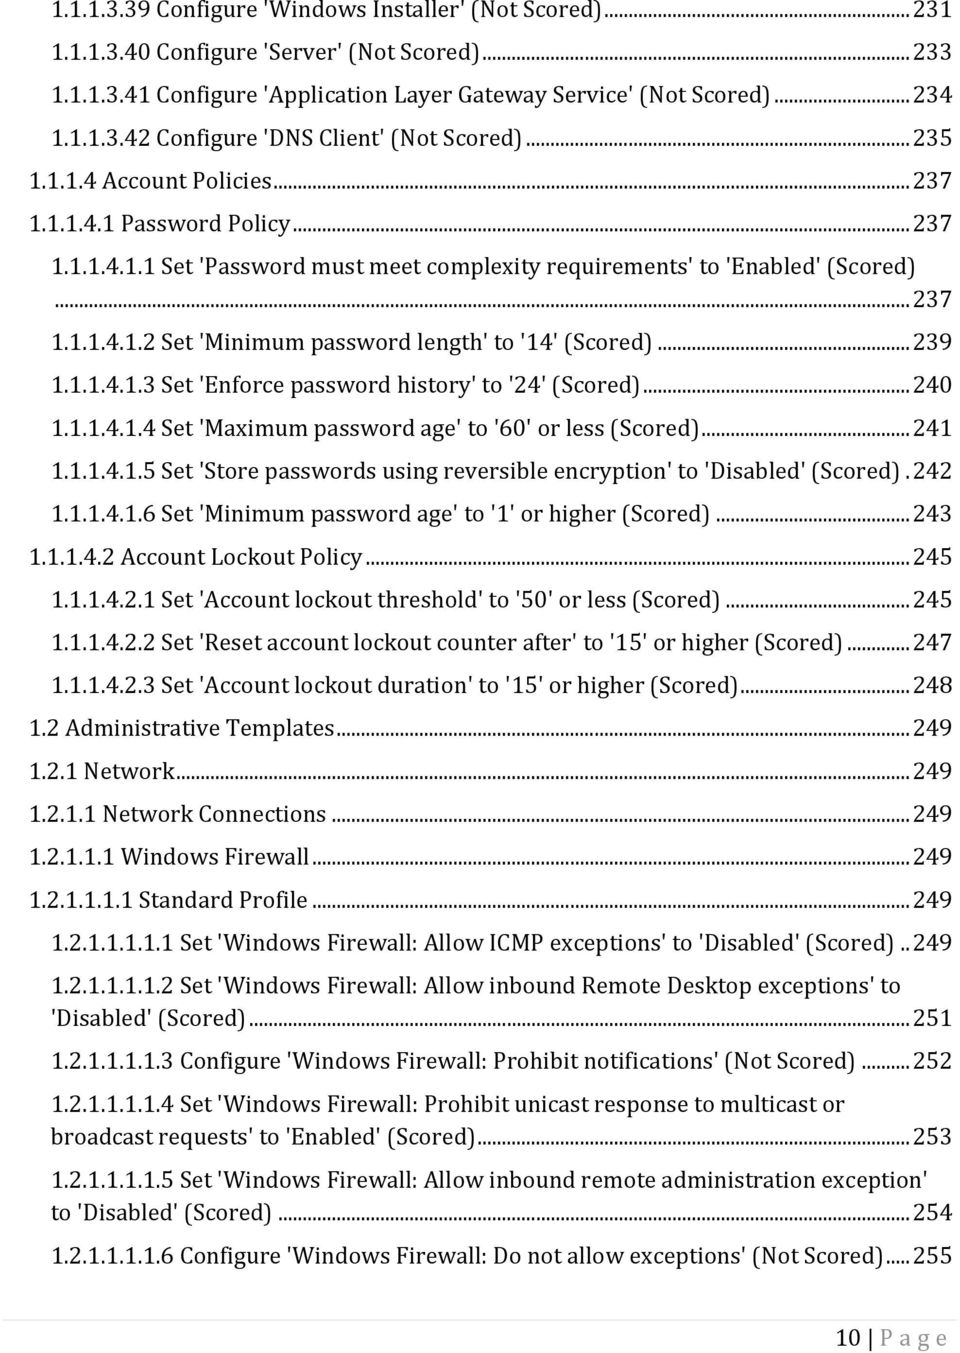 .. 239 1.1.1.4.1.3 Set 'Enforce password history' to '24' (Scored)... 240 1.1.1.4.1.4 Set 'Maximum password age' to '60' or less (Scored)... 241 1.1.1.4.1.5 Set 'Store passwords using reversible encryption' to 'Disabled' (Scored).